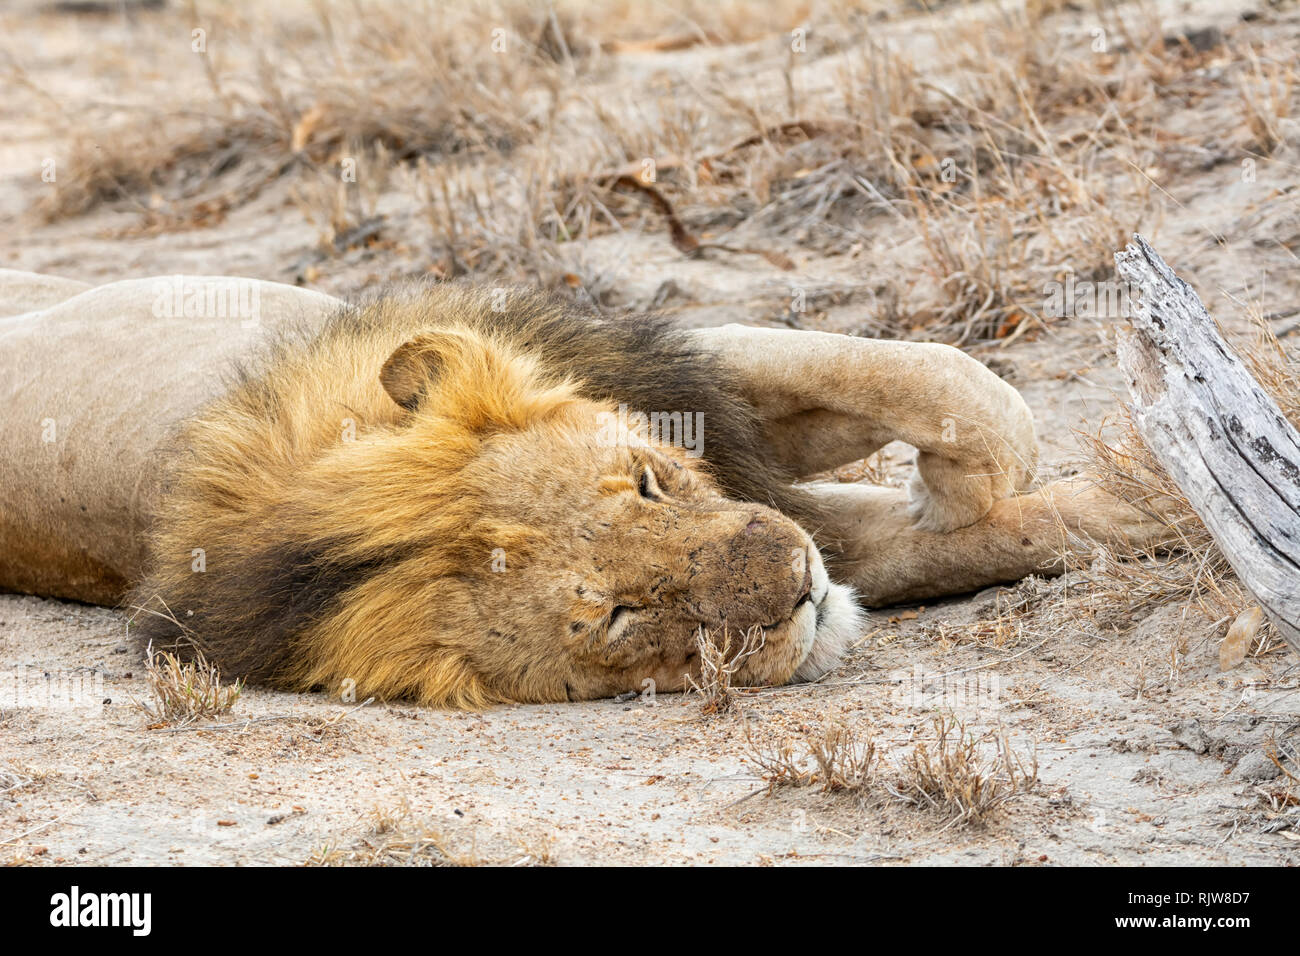 A male Lion having a snooze in Southern African savanna - Stock Image